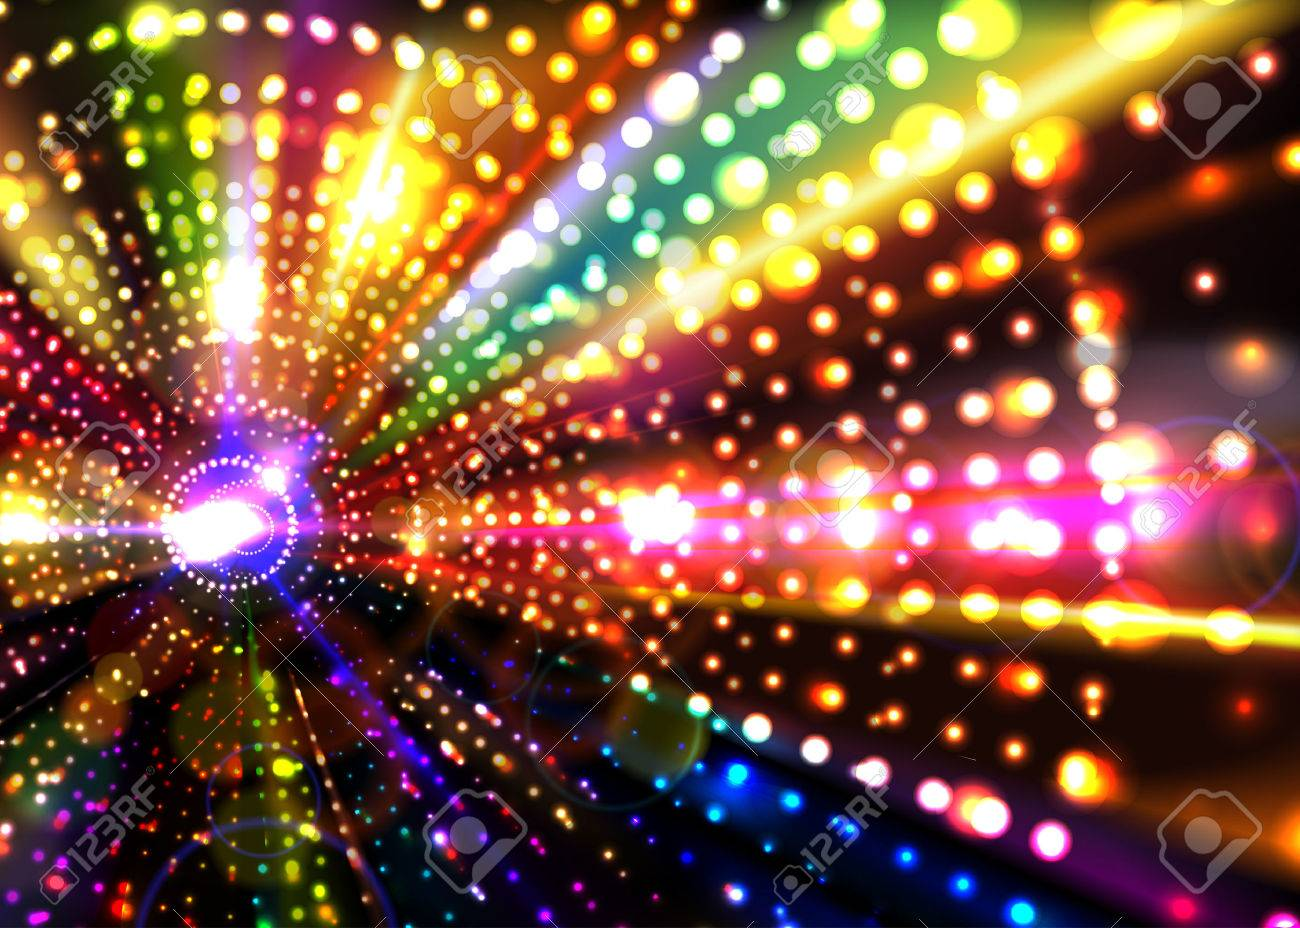 Abstract Party Background. - 43211348